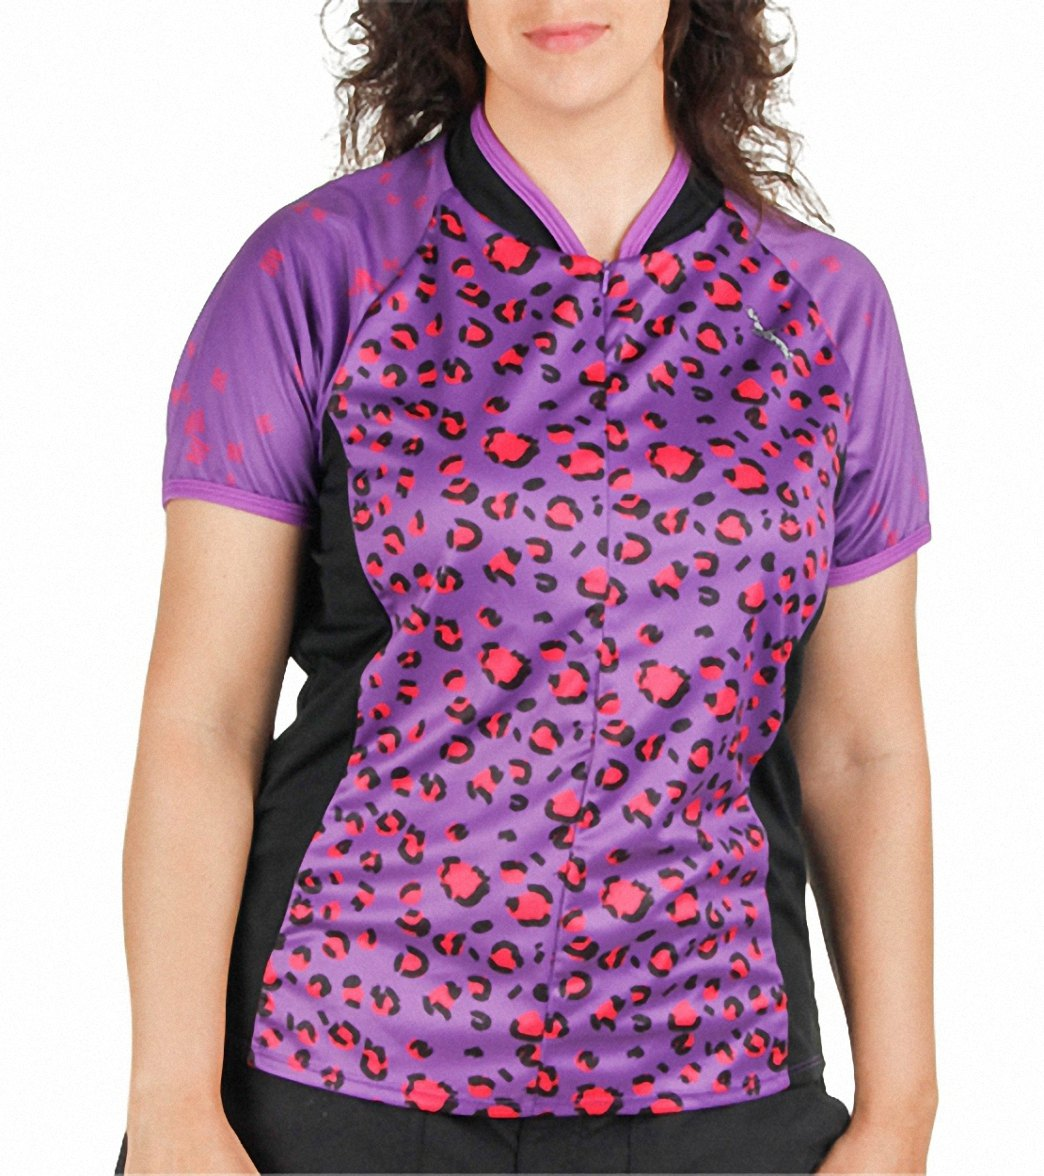 75250d774 Shebeest Women s Bellissima Mewow Plus Size Cycling Jersey at  SwimOutlet.com - Free Shipping